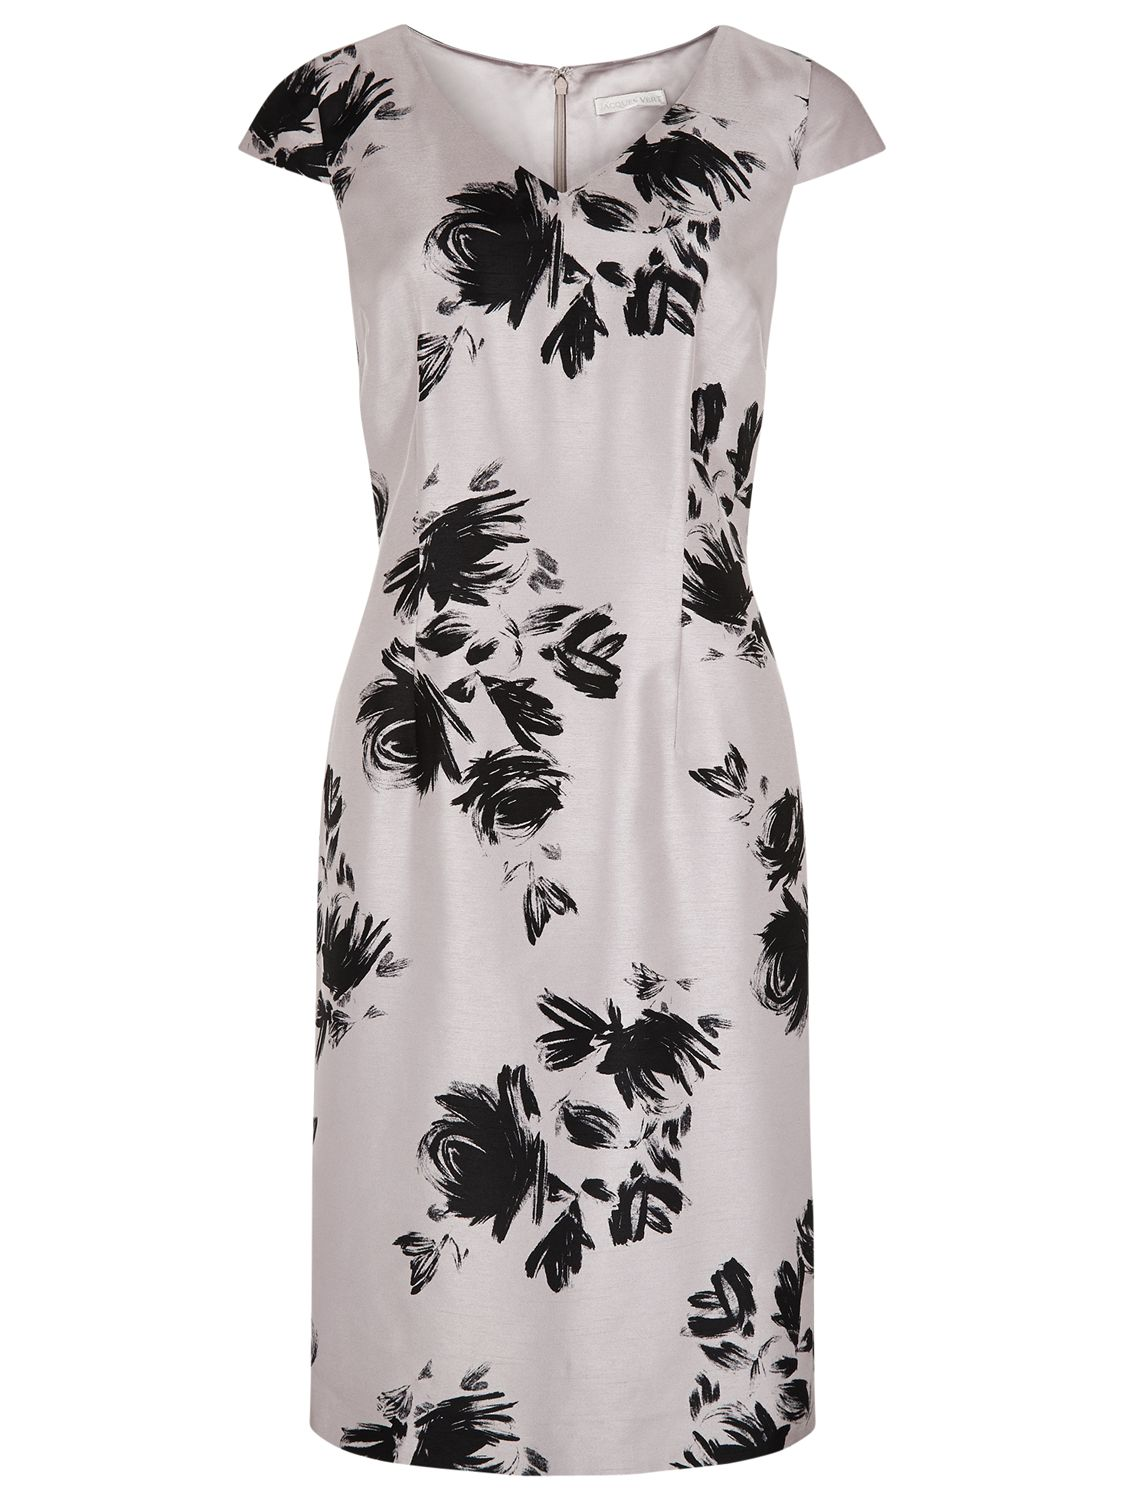 jacques vert floral shadow dress opal, jacques, vert, floral, shadow, dress, opal, jacques vert, 20|8, clearance, womenswear offers, womens dresses offers, special offers, women, plus size, inactive womenswear, new reductions, womens dresses, 1633296